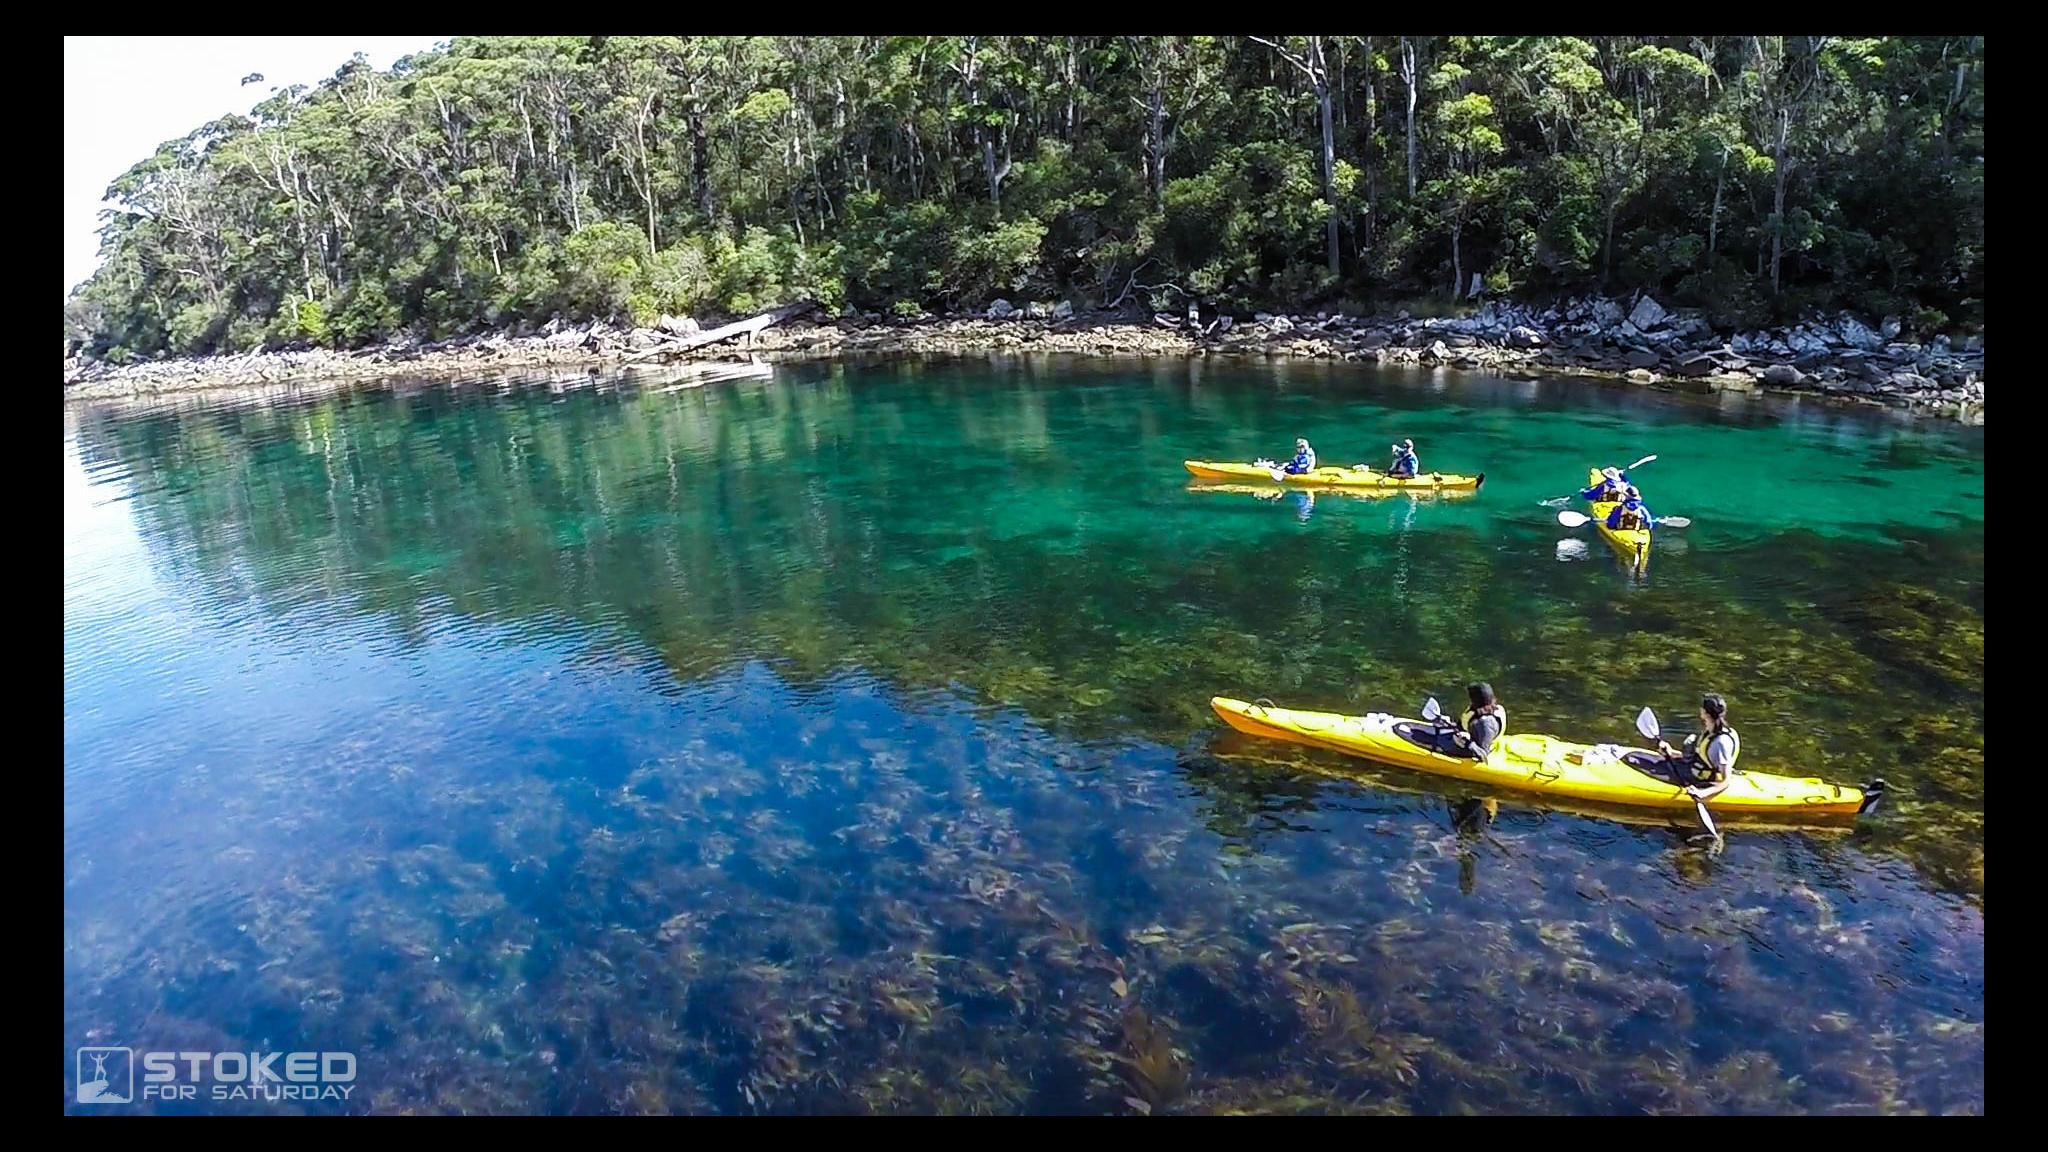 Roaring 40s Kayaking - Best Adventure tour in Tasmania - kayaking on Tasman Peninsula